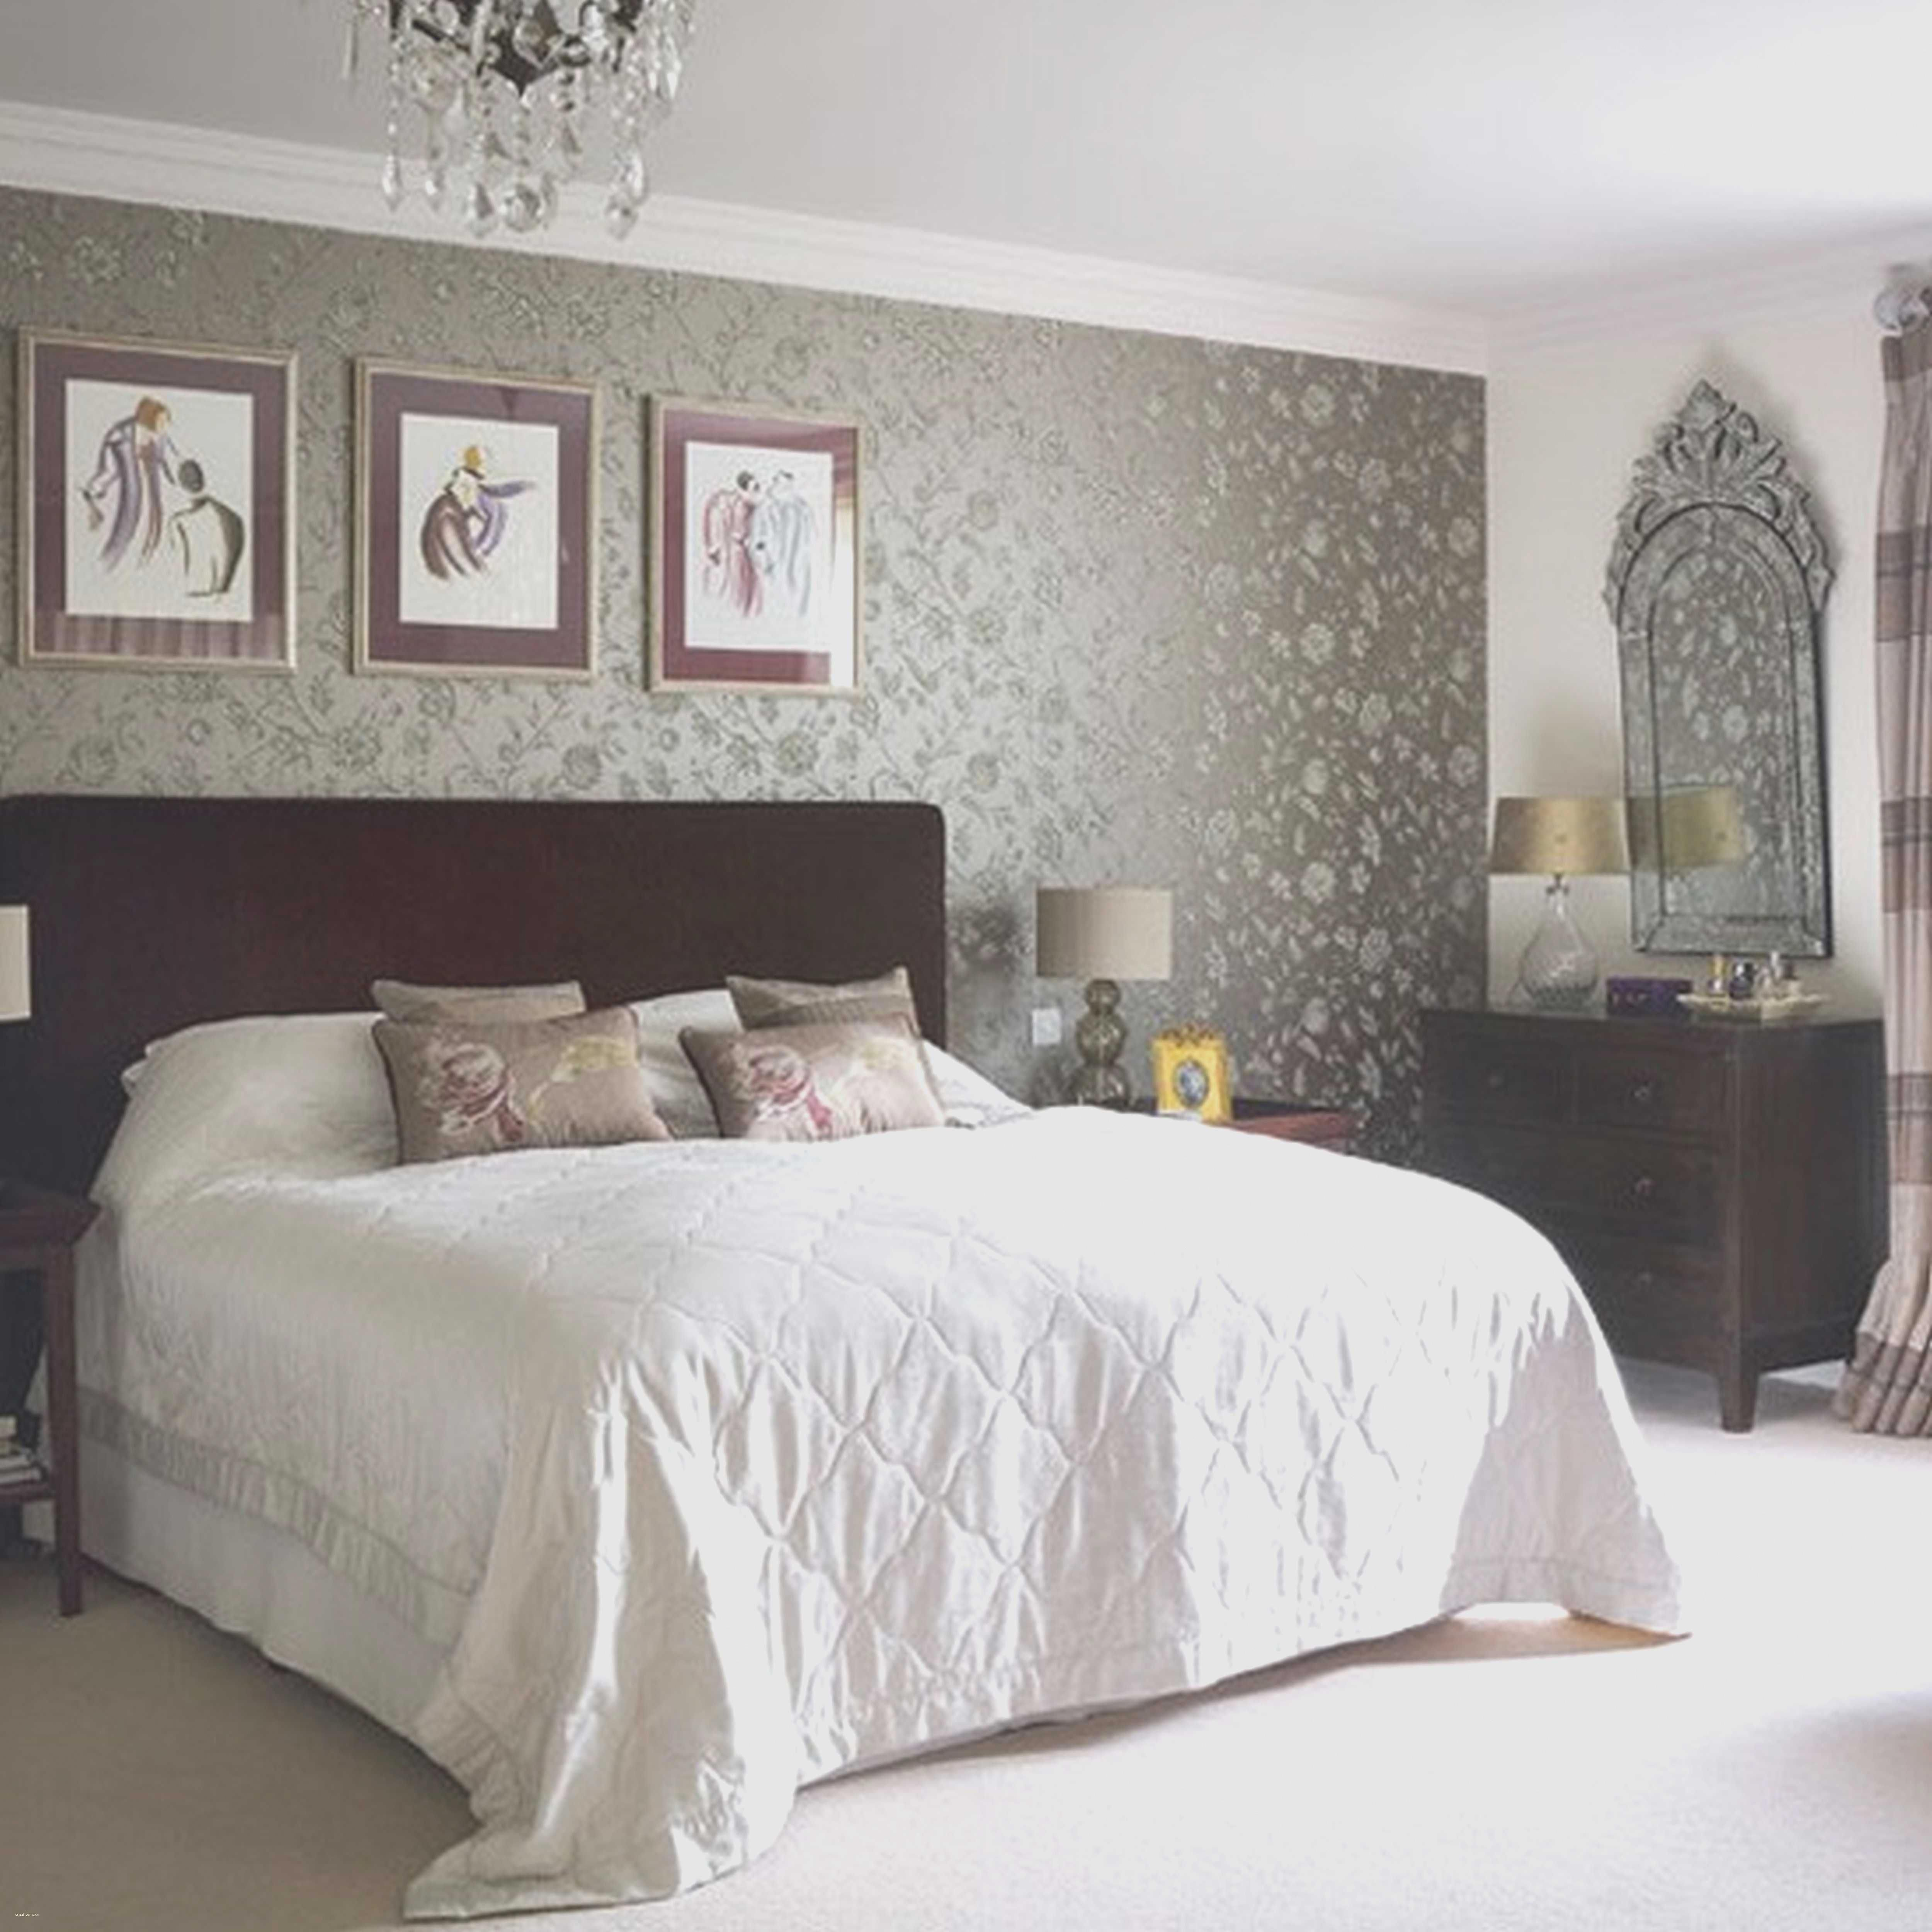 Grey And White Room Ideas Tumblr Fresh Grey And White Room